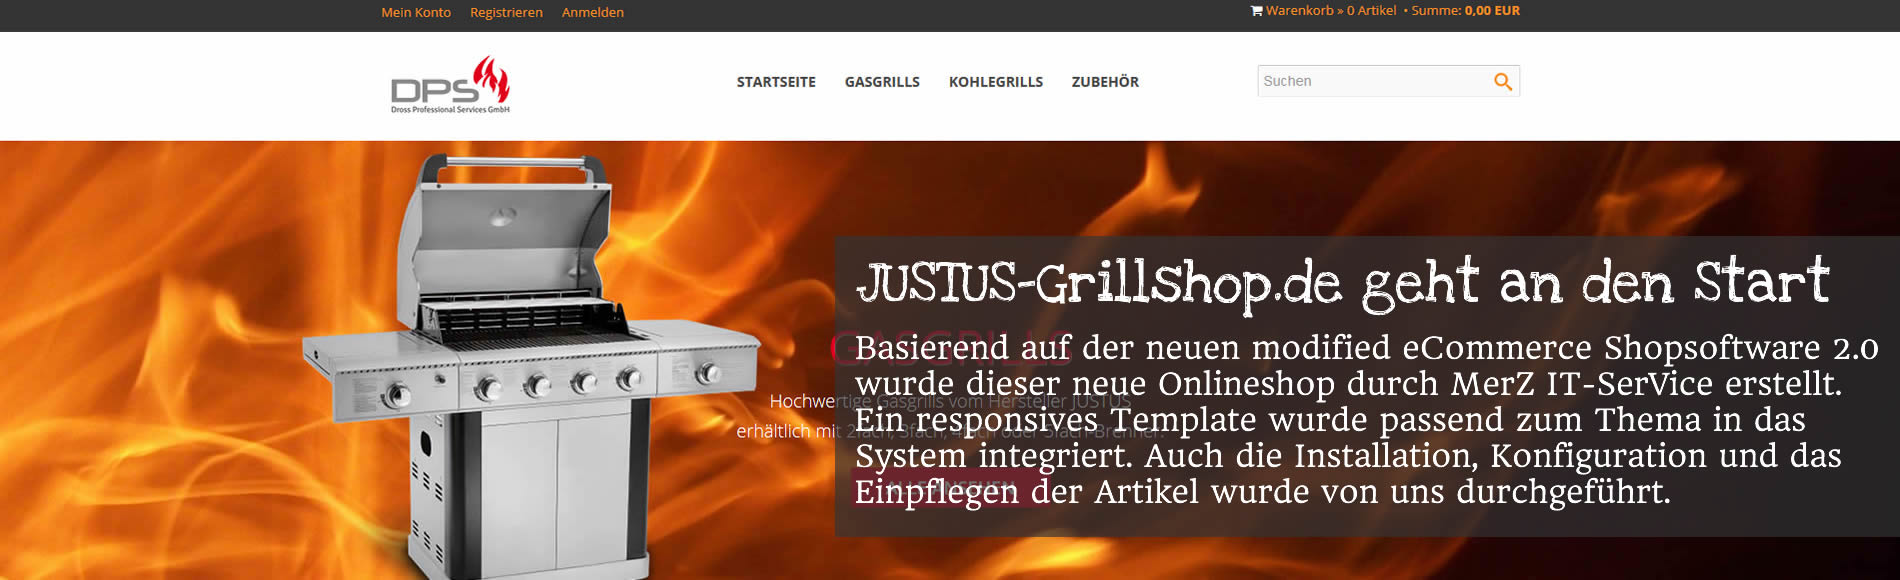 Onlineshop Justus-Grillshop.de auf Basis der modified eCommerce Shopsoftware geht an den Start